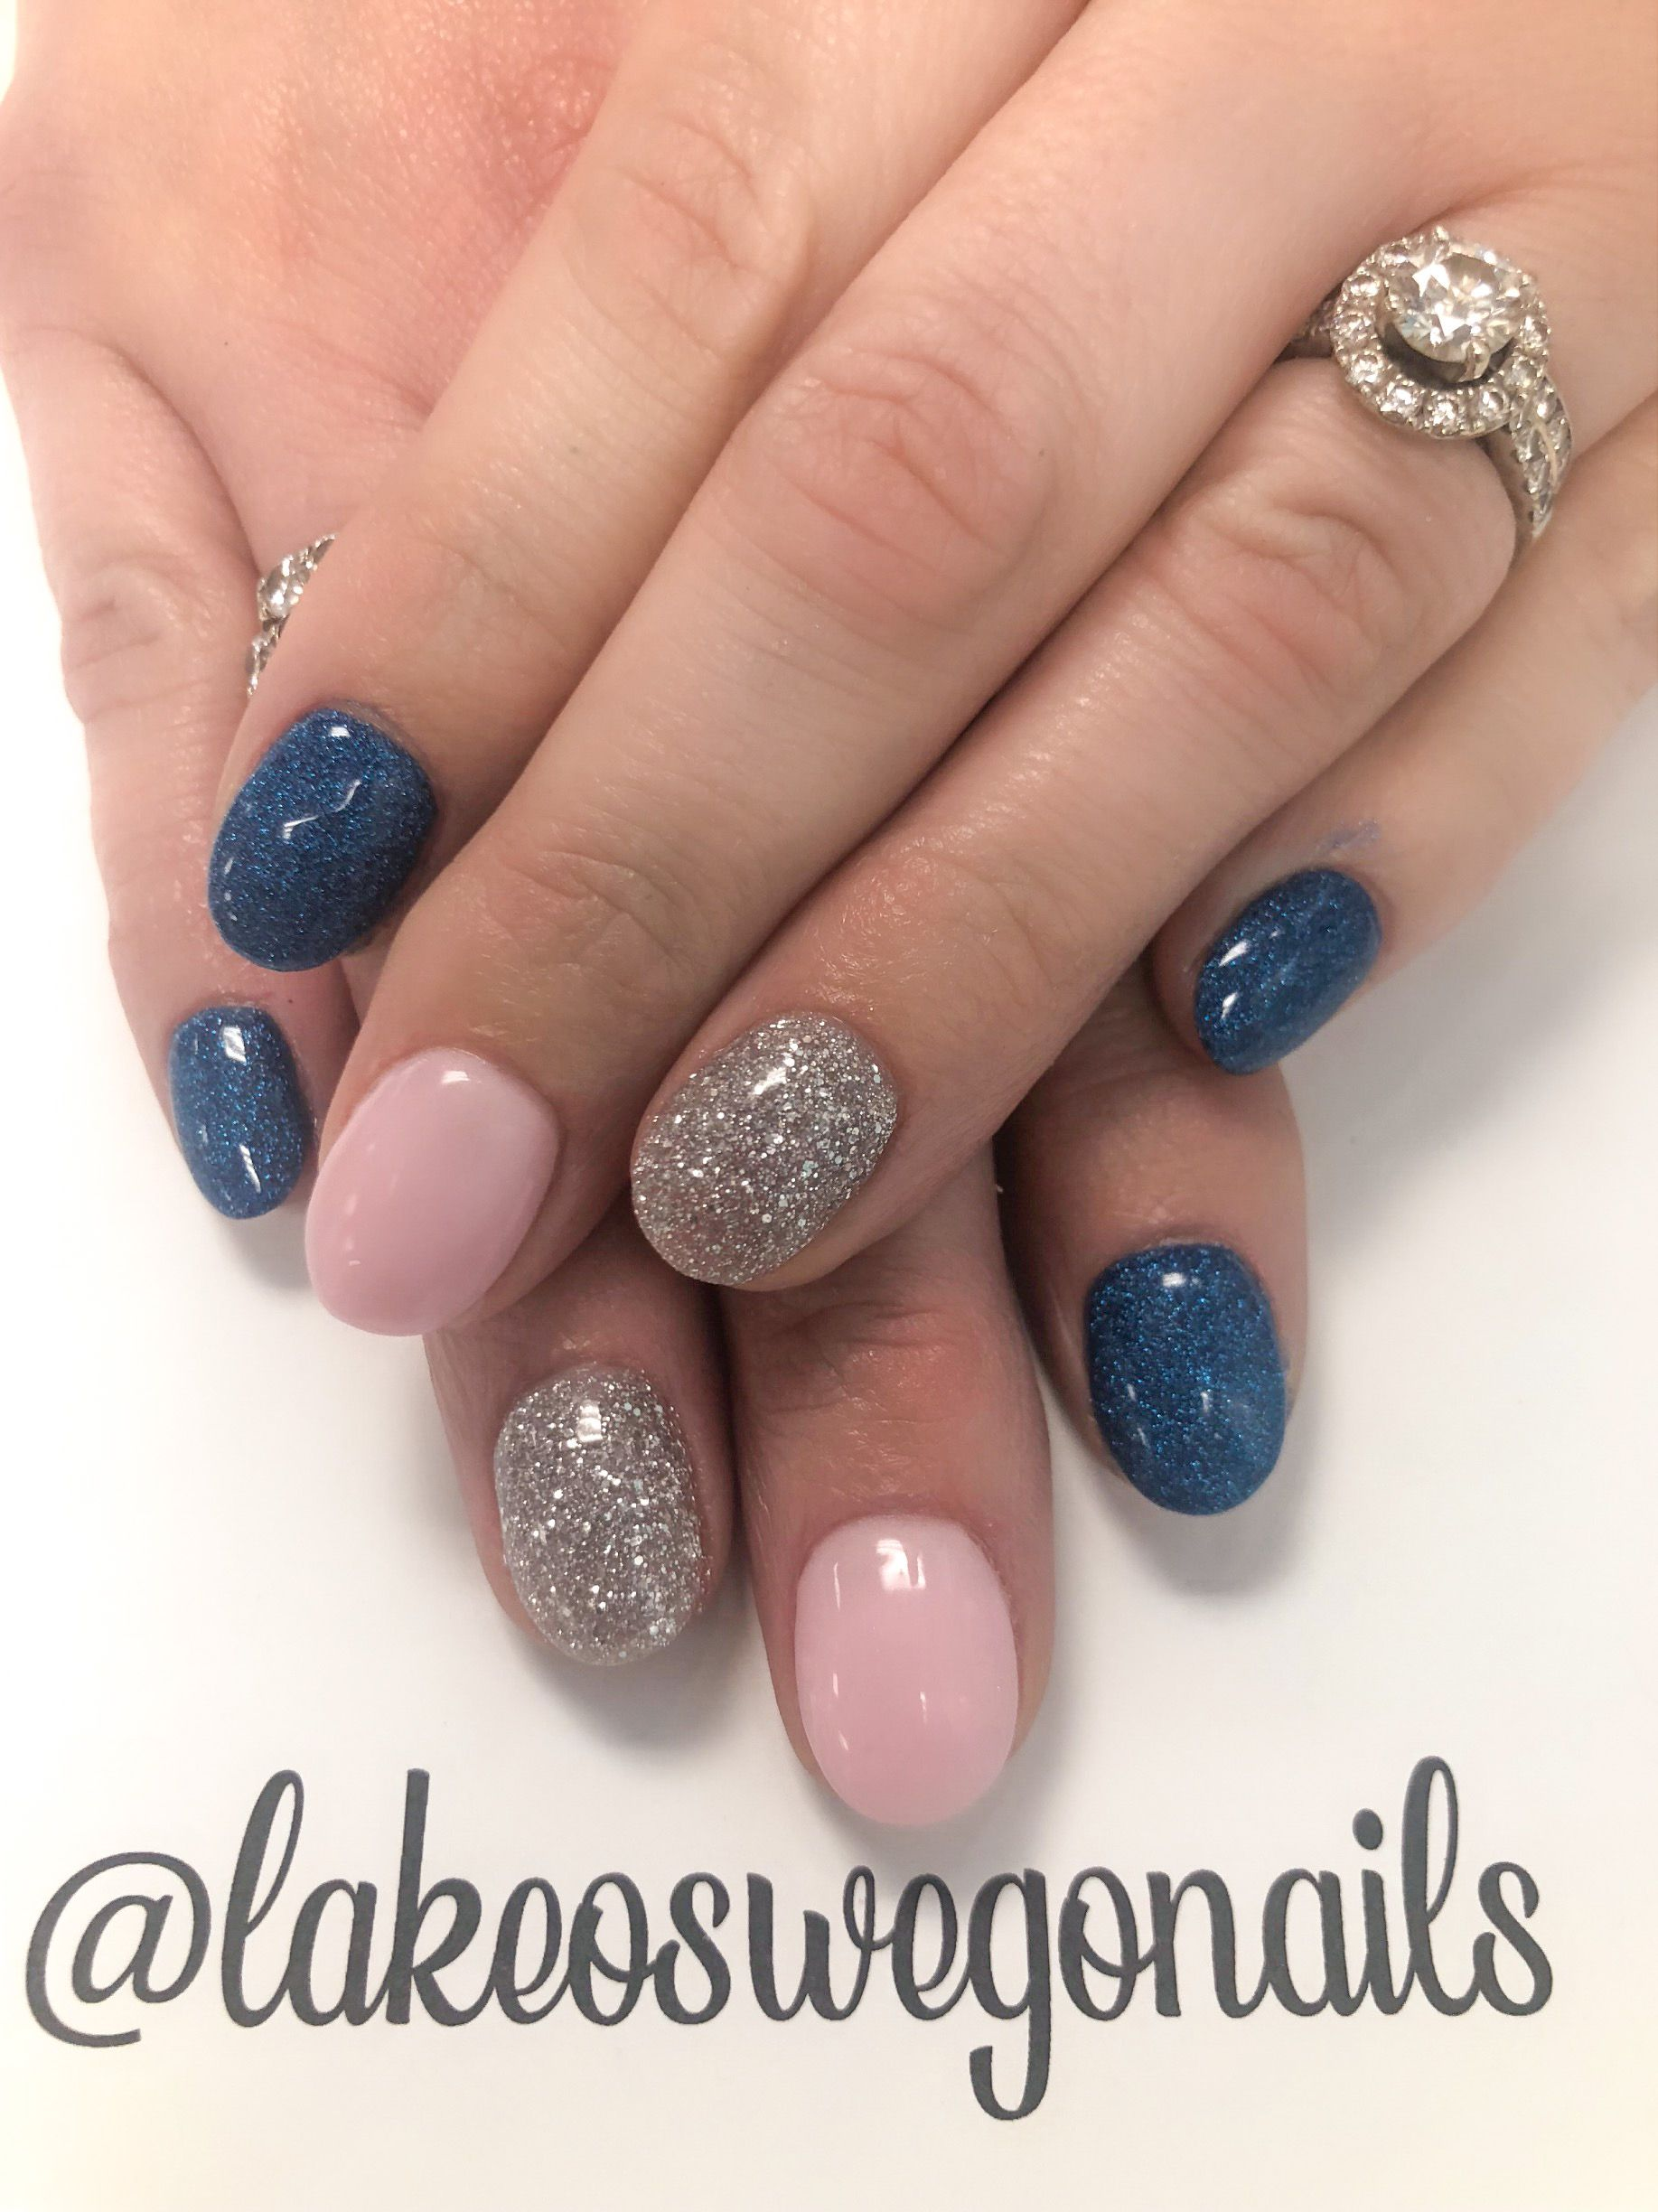 Dainty Sparkly Nails in 2020 | Sparkly nails, Nails ...